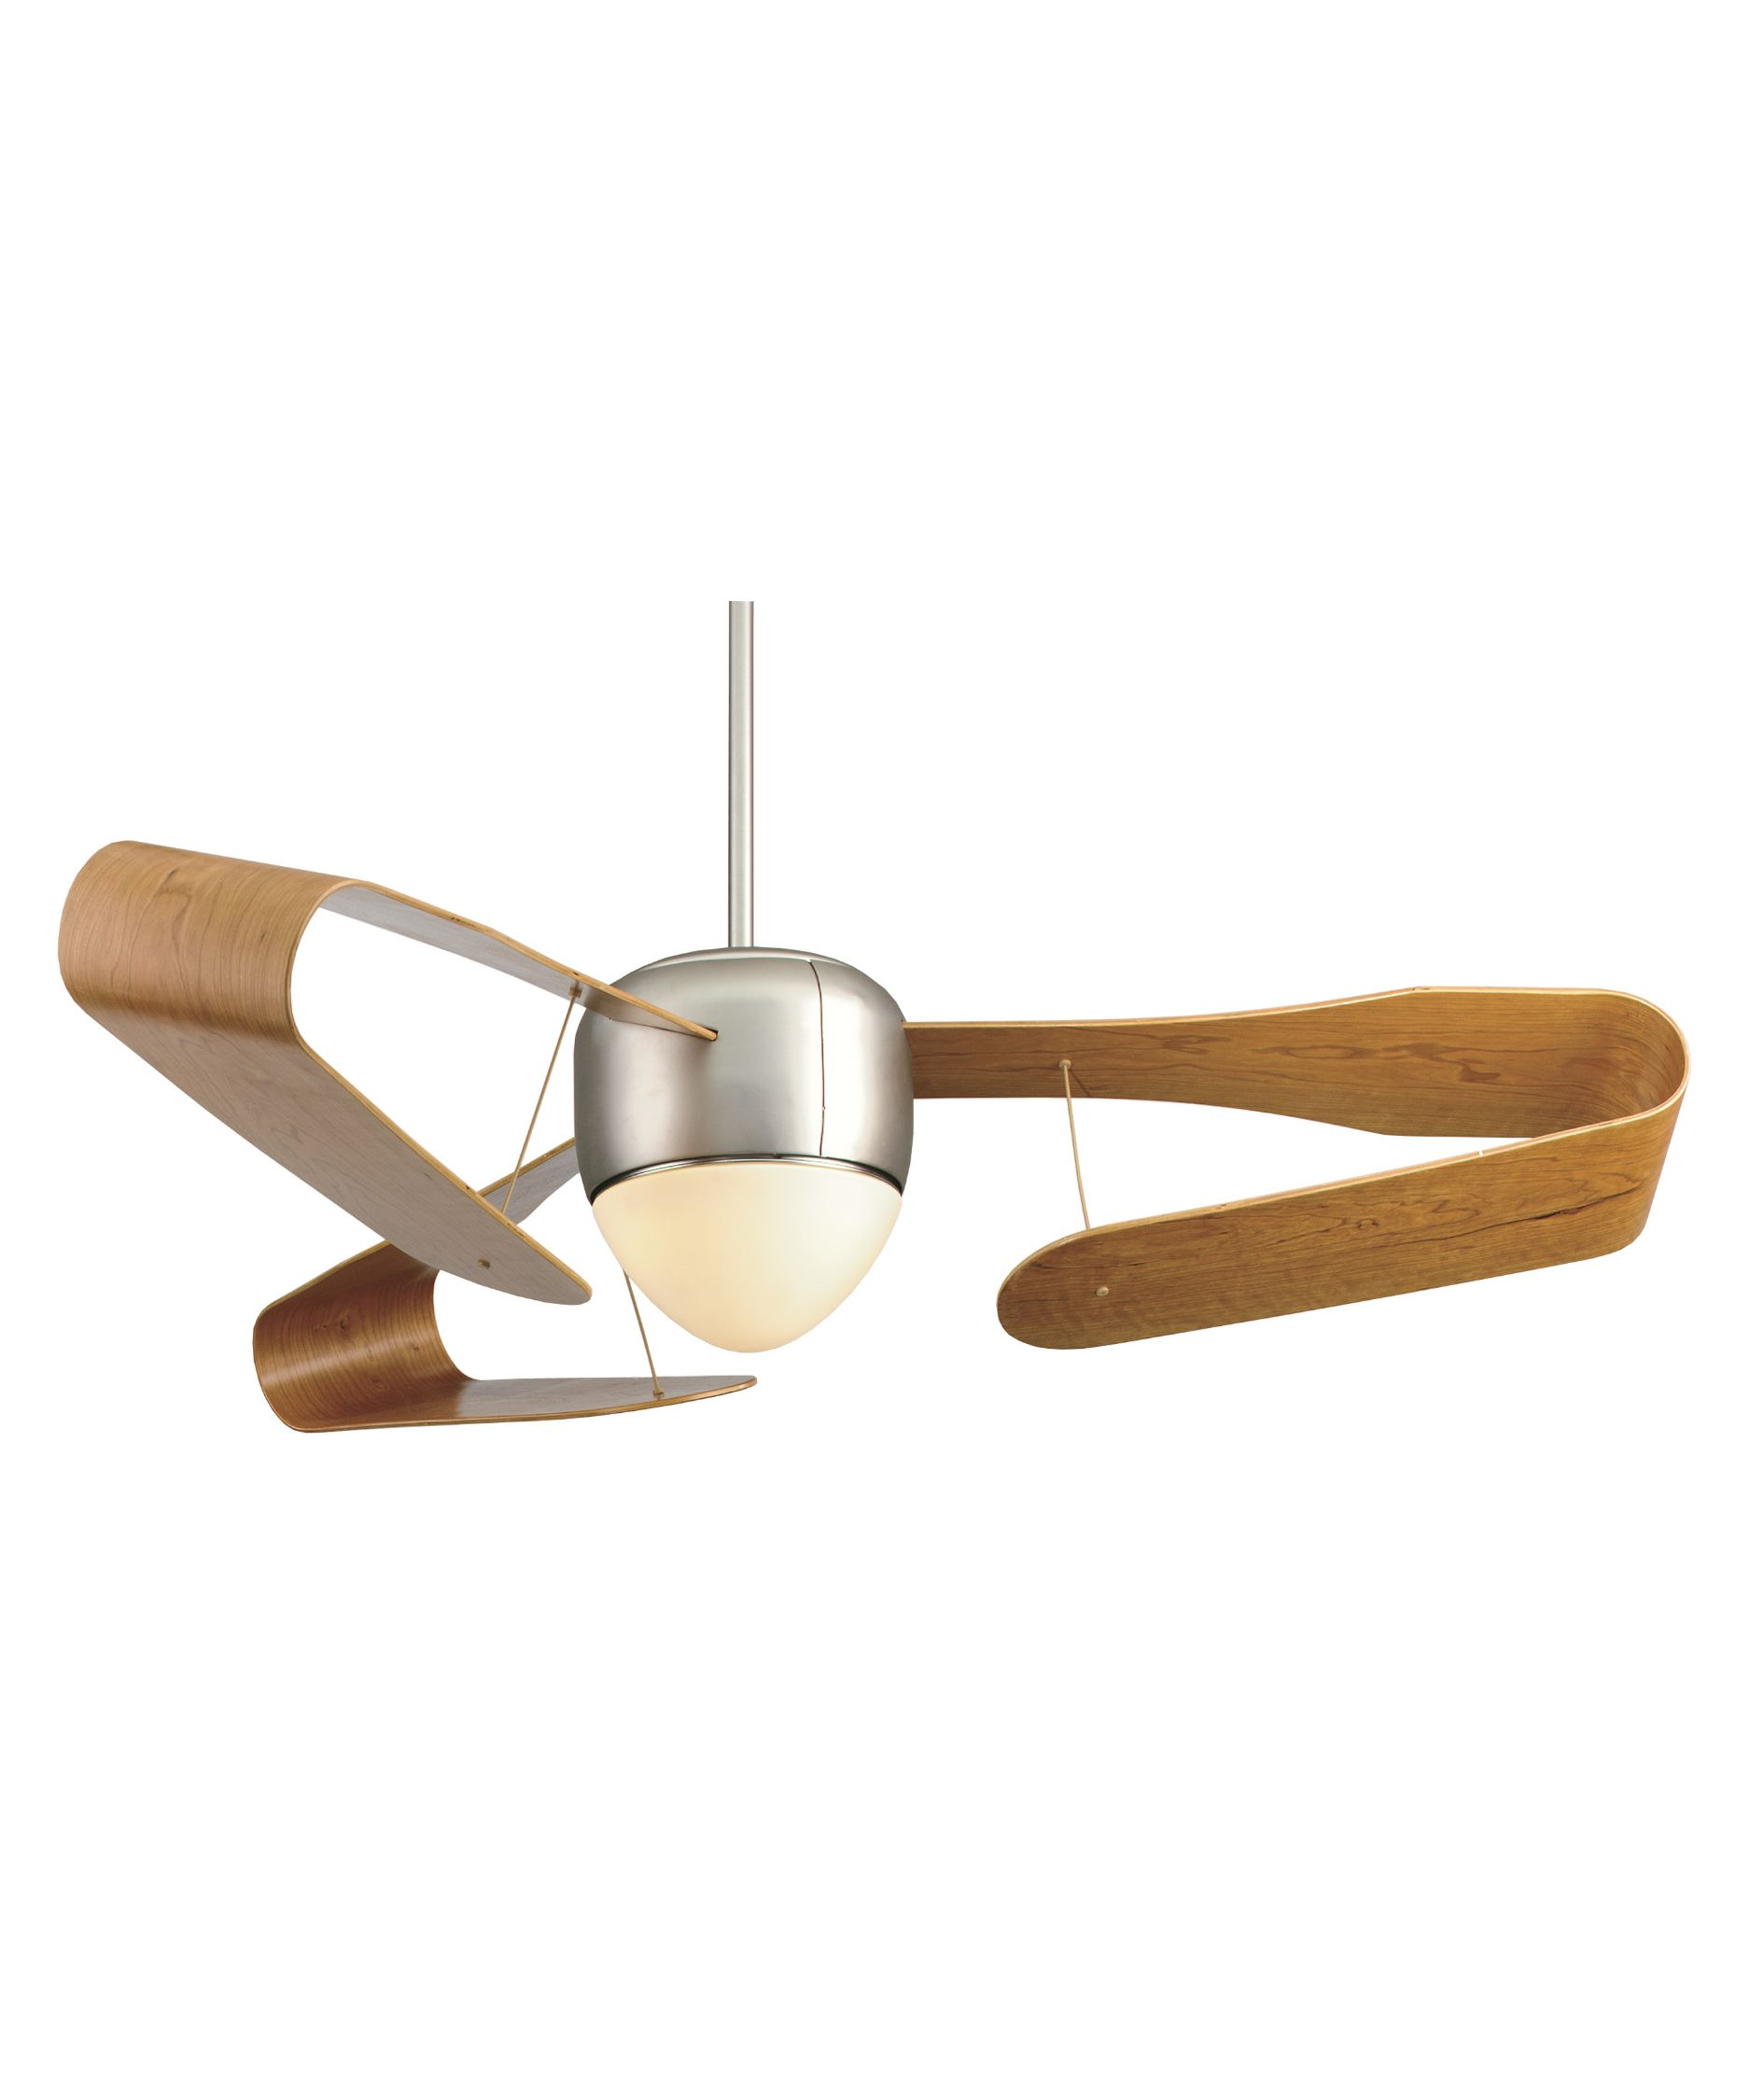 Cute Exhale Bladeless Modern Ceiling Fan